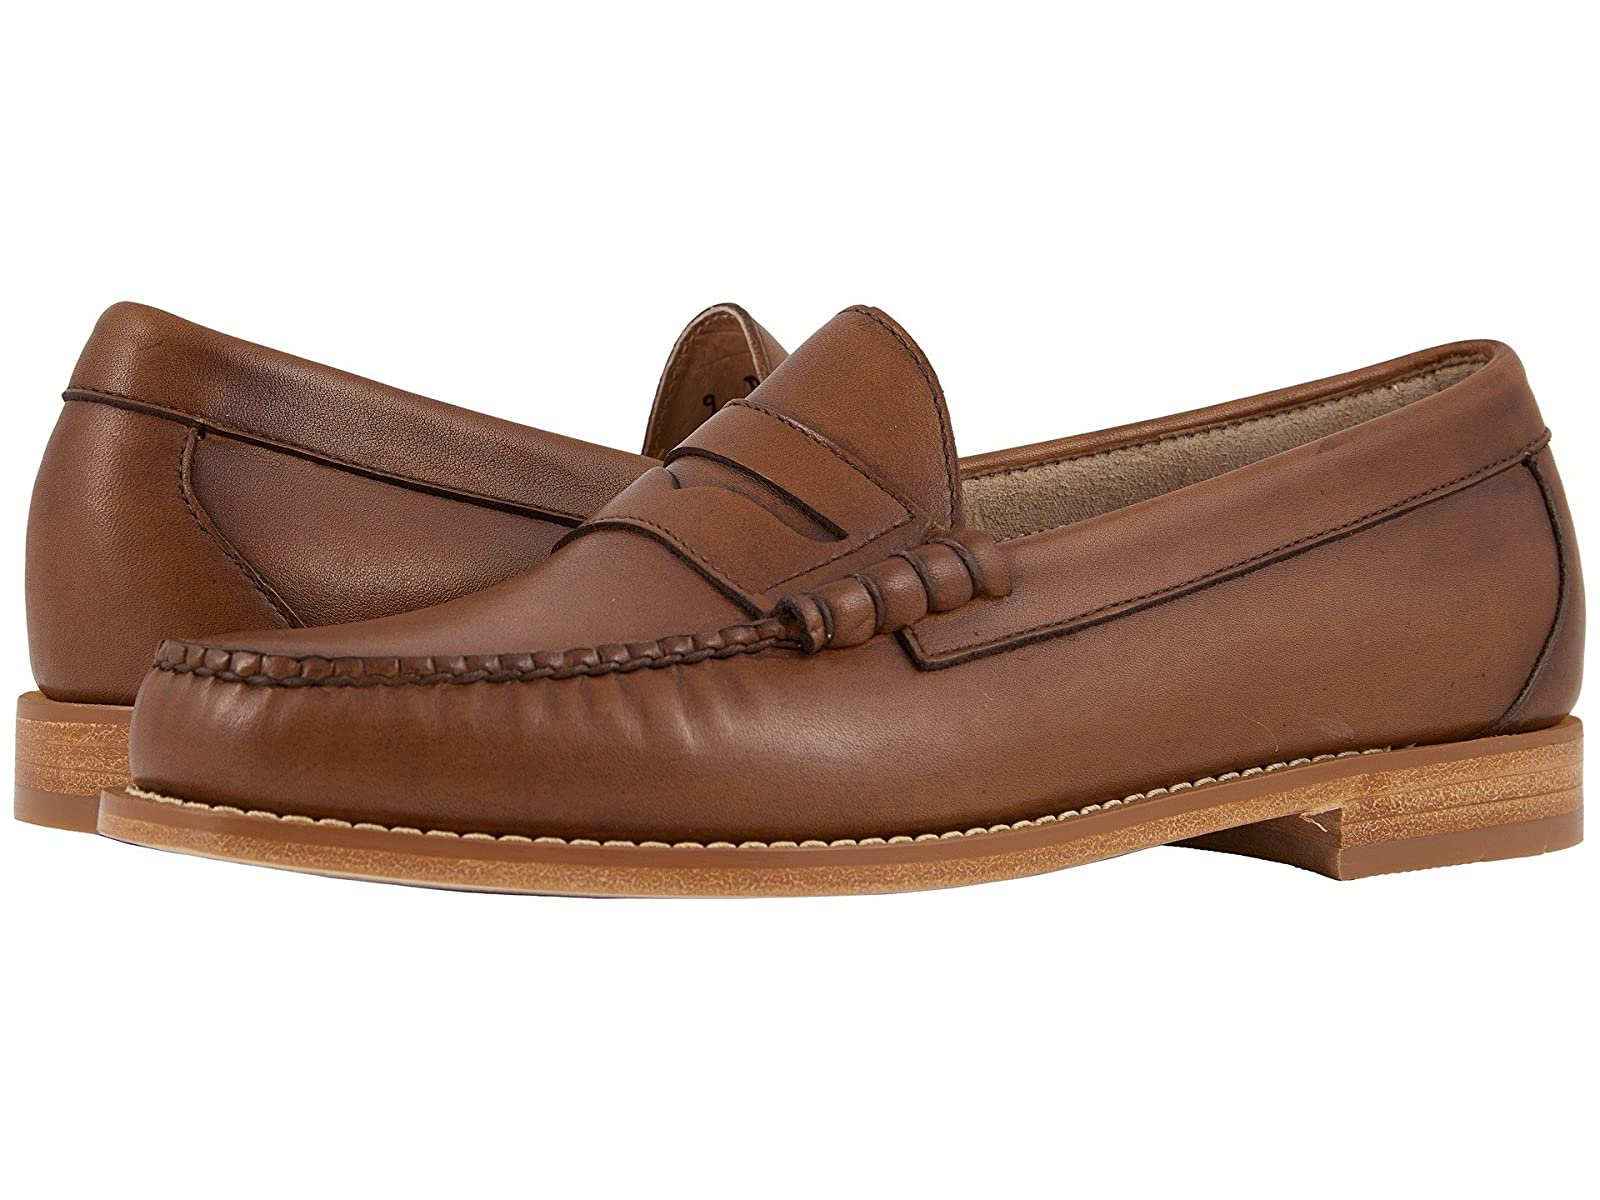 G.H. Bass & Co. Larson WeejunsAtmospheric grades have affordable shoes